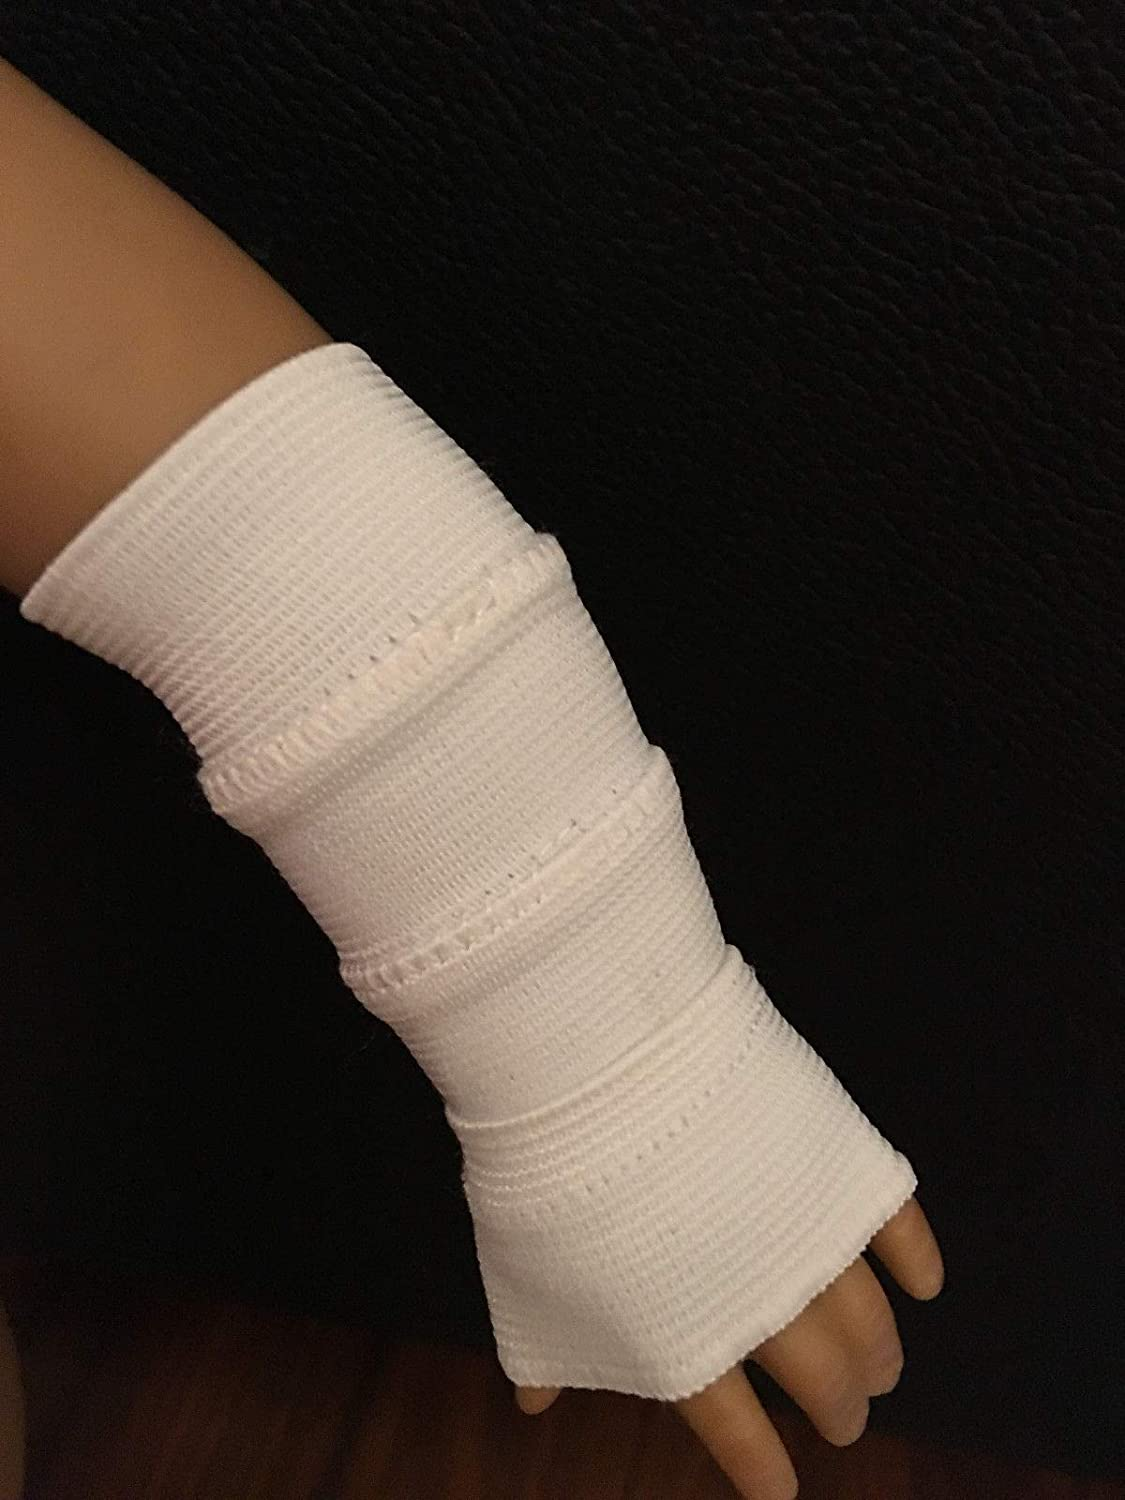 For American 18 inch Girl Doll Left Right Arm Cast, or Bandage for Medical Supply Kit Item